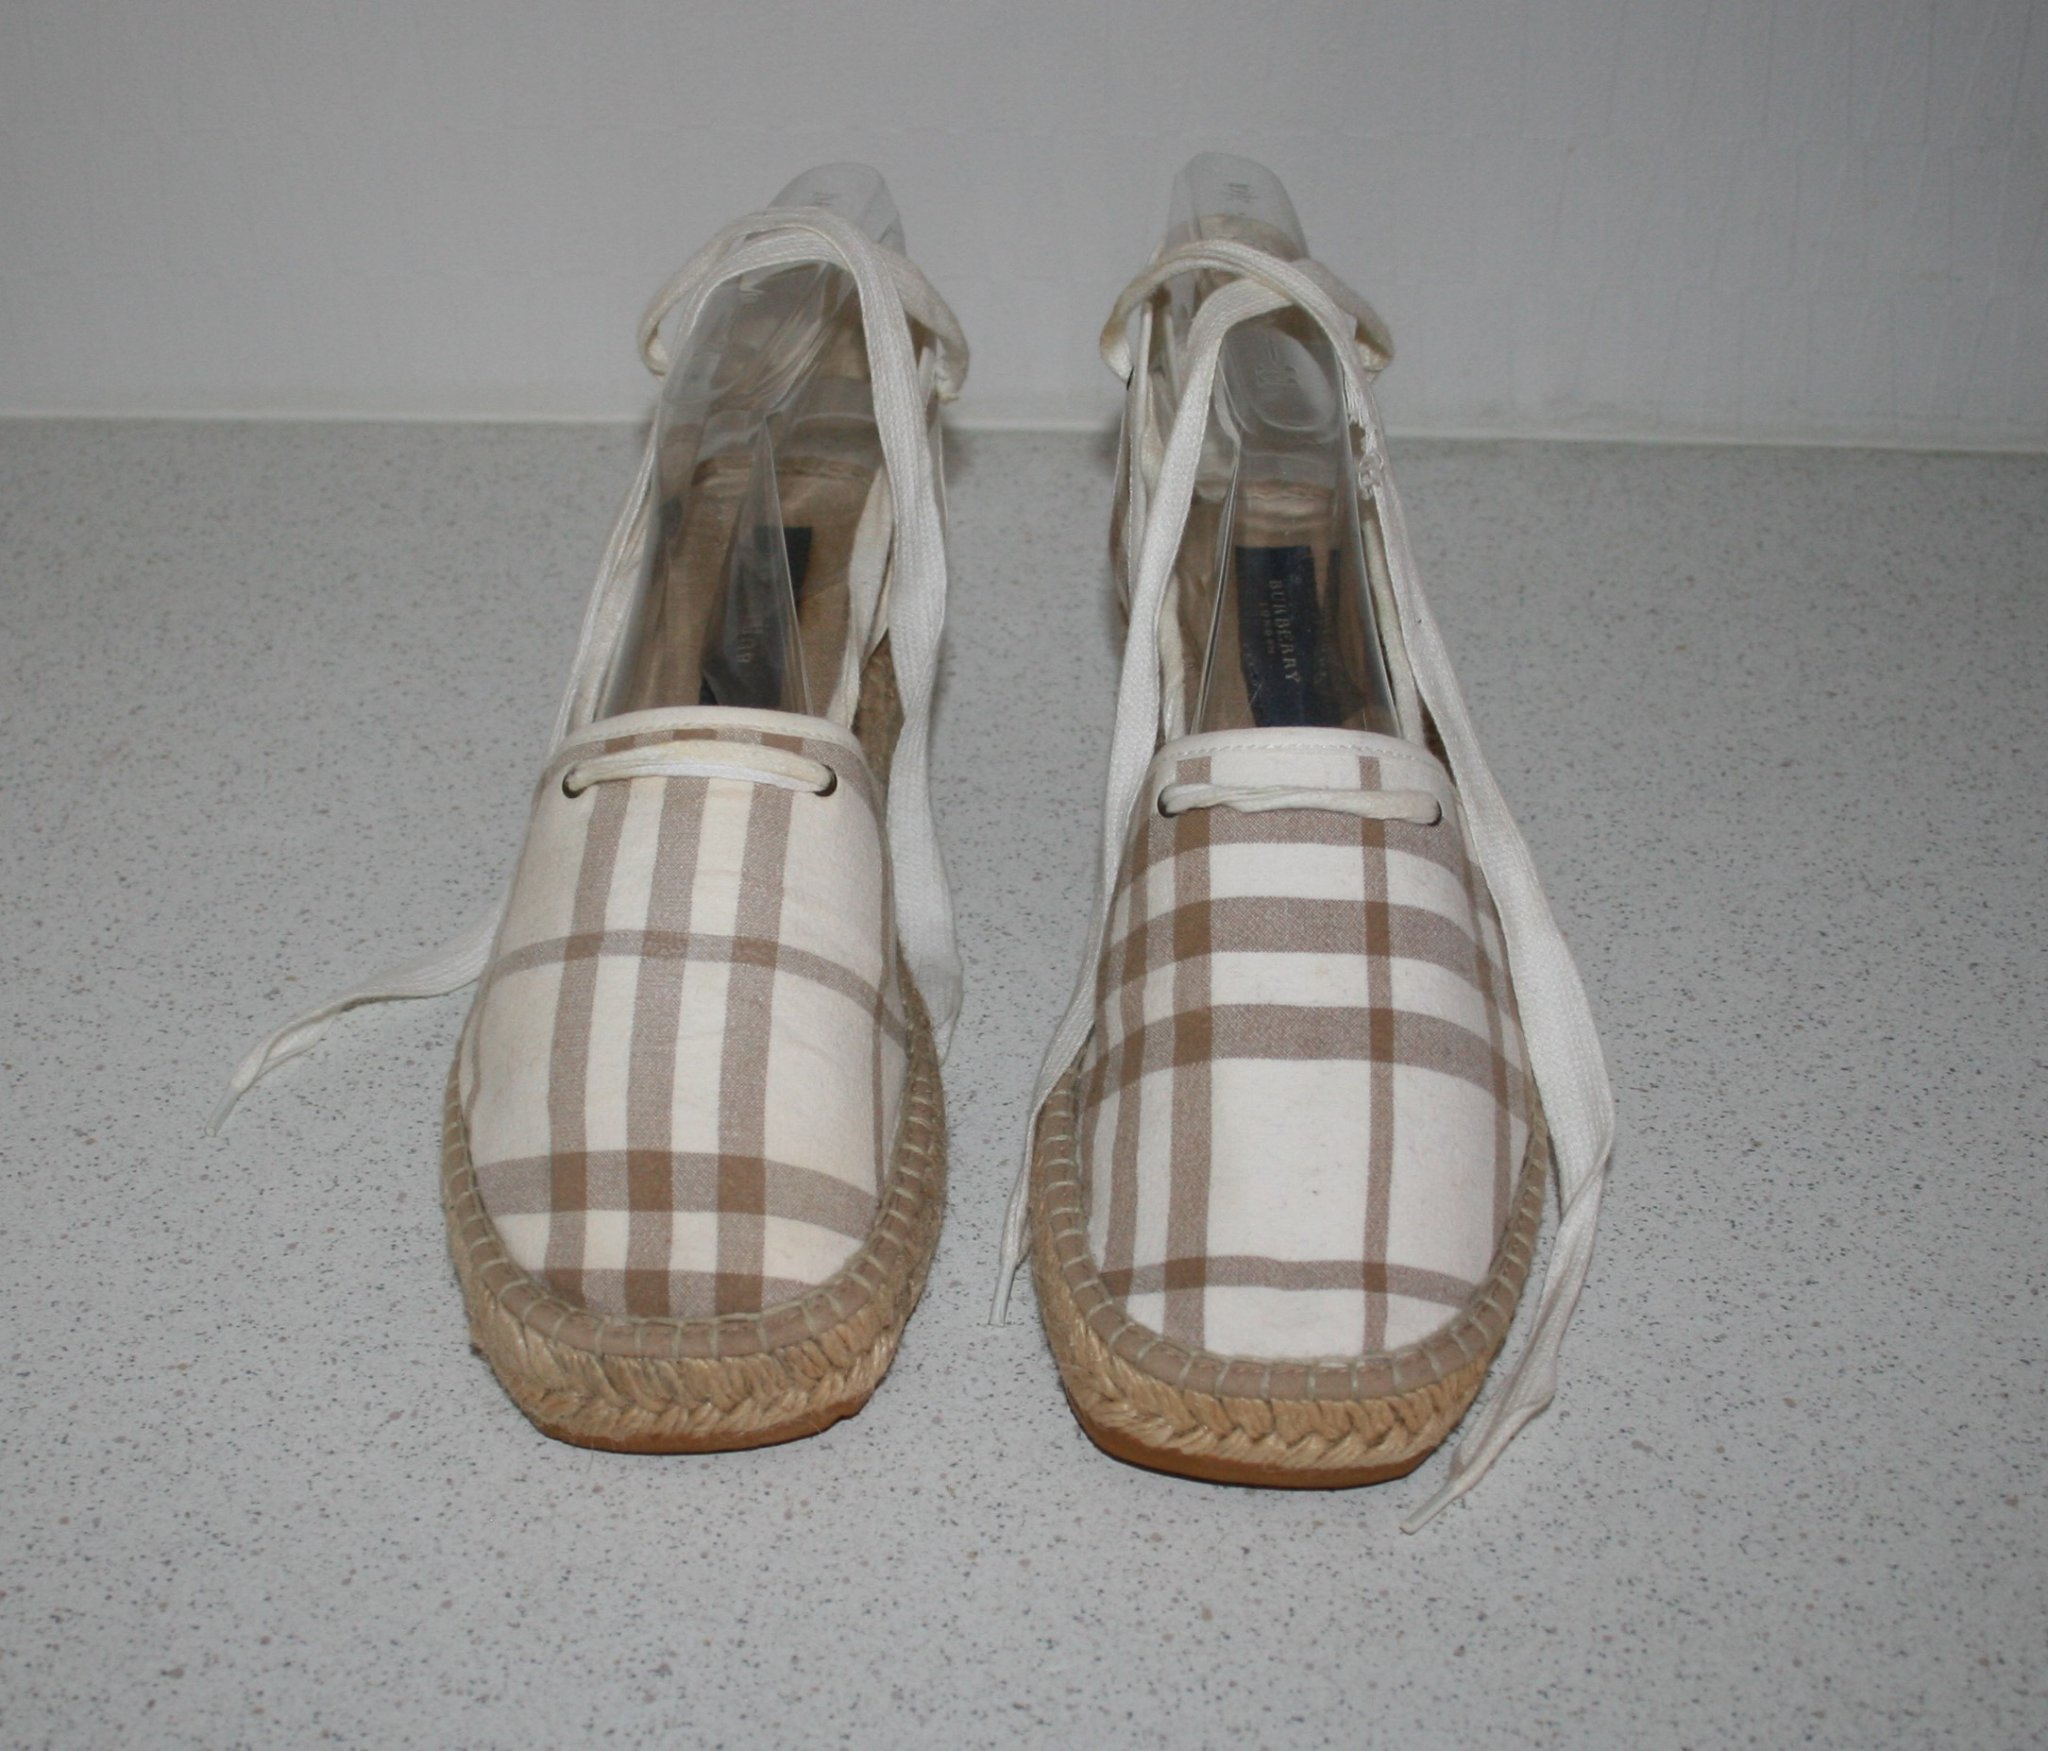 BURBERRY Espadrillos Kilklack Wedge Sandaler Lace-up. Canvas Check. Stl 40-40,5